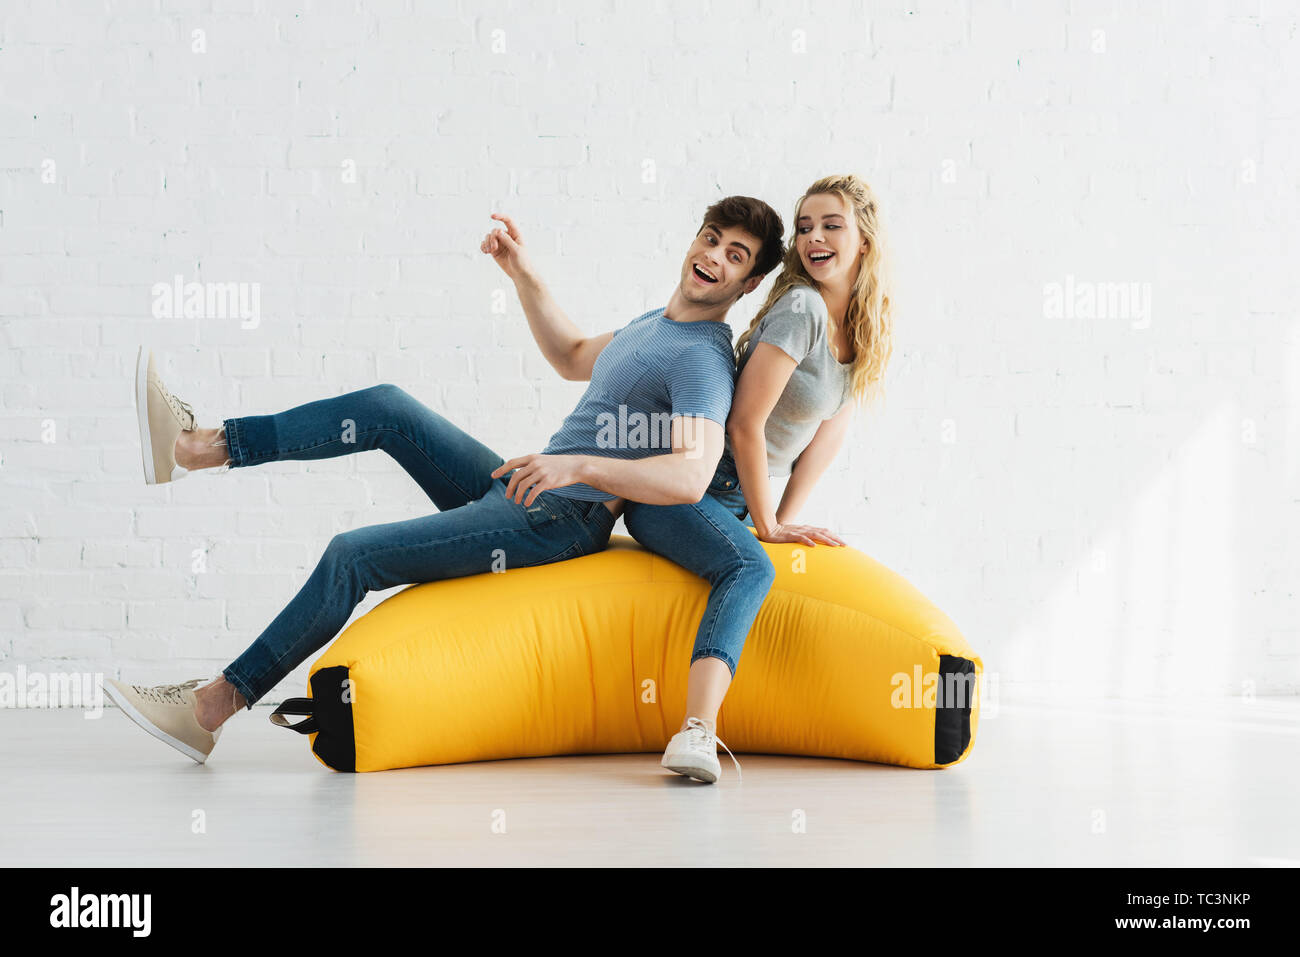 cheerful blonde girl and happy man sitting on yellow bean bag chair - Stock Image